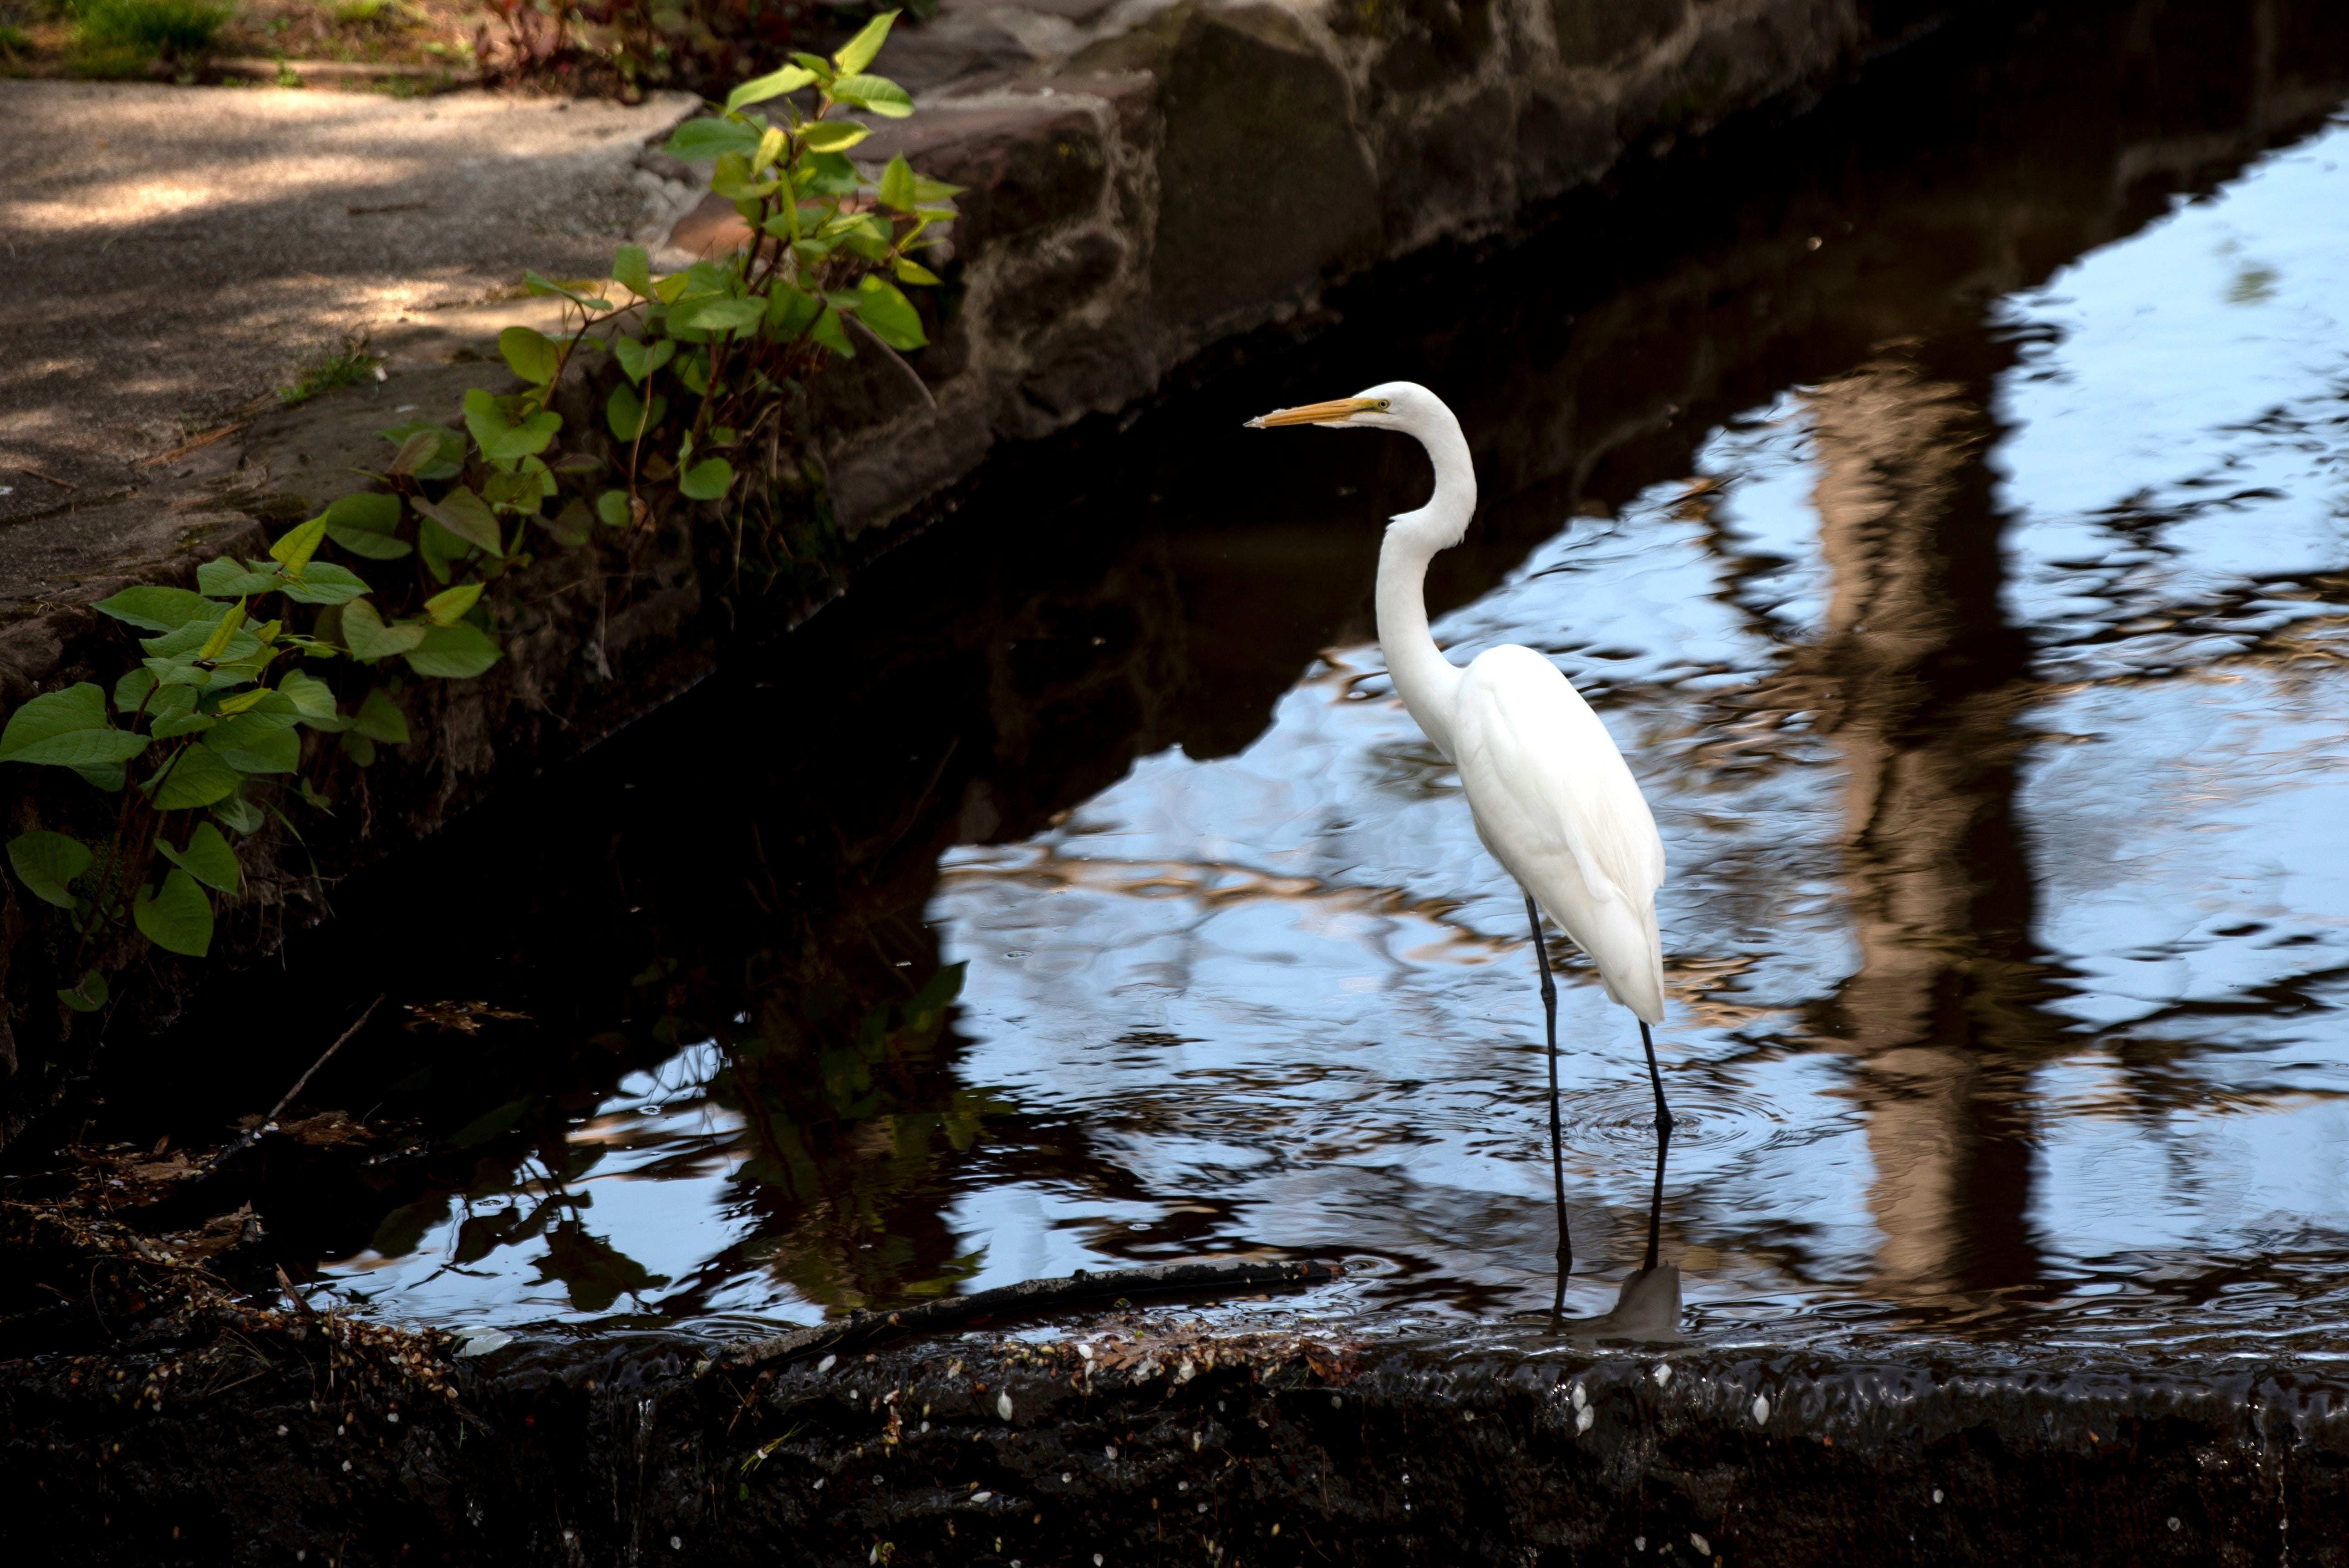 An egret walks in the water of McDanolds Brook near Third Ward Park in Passaic on Friday, April 23, 2021.